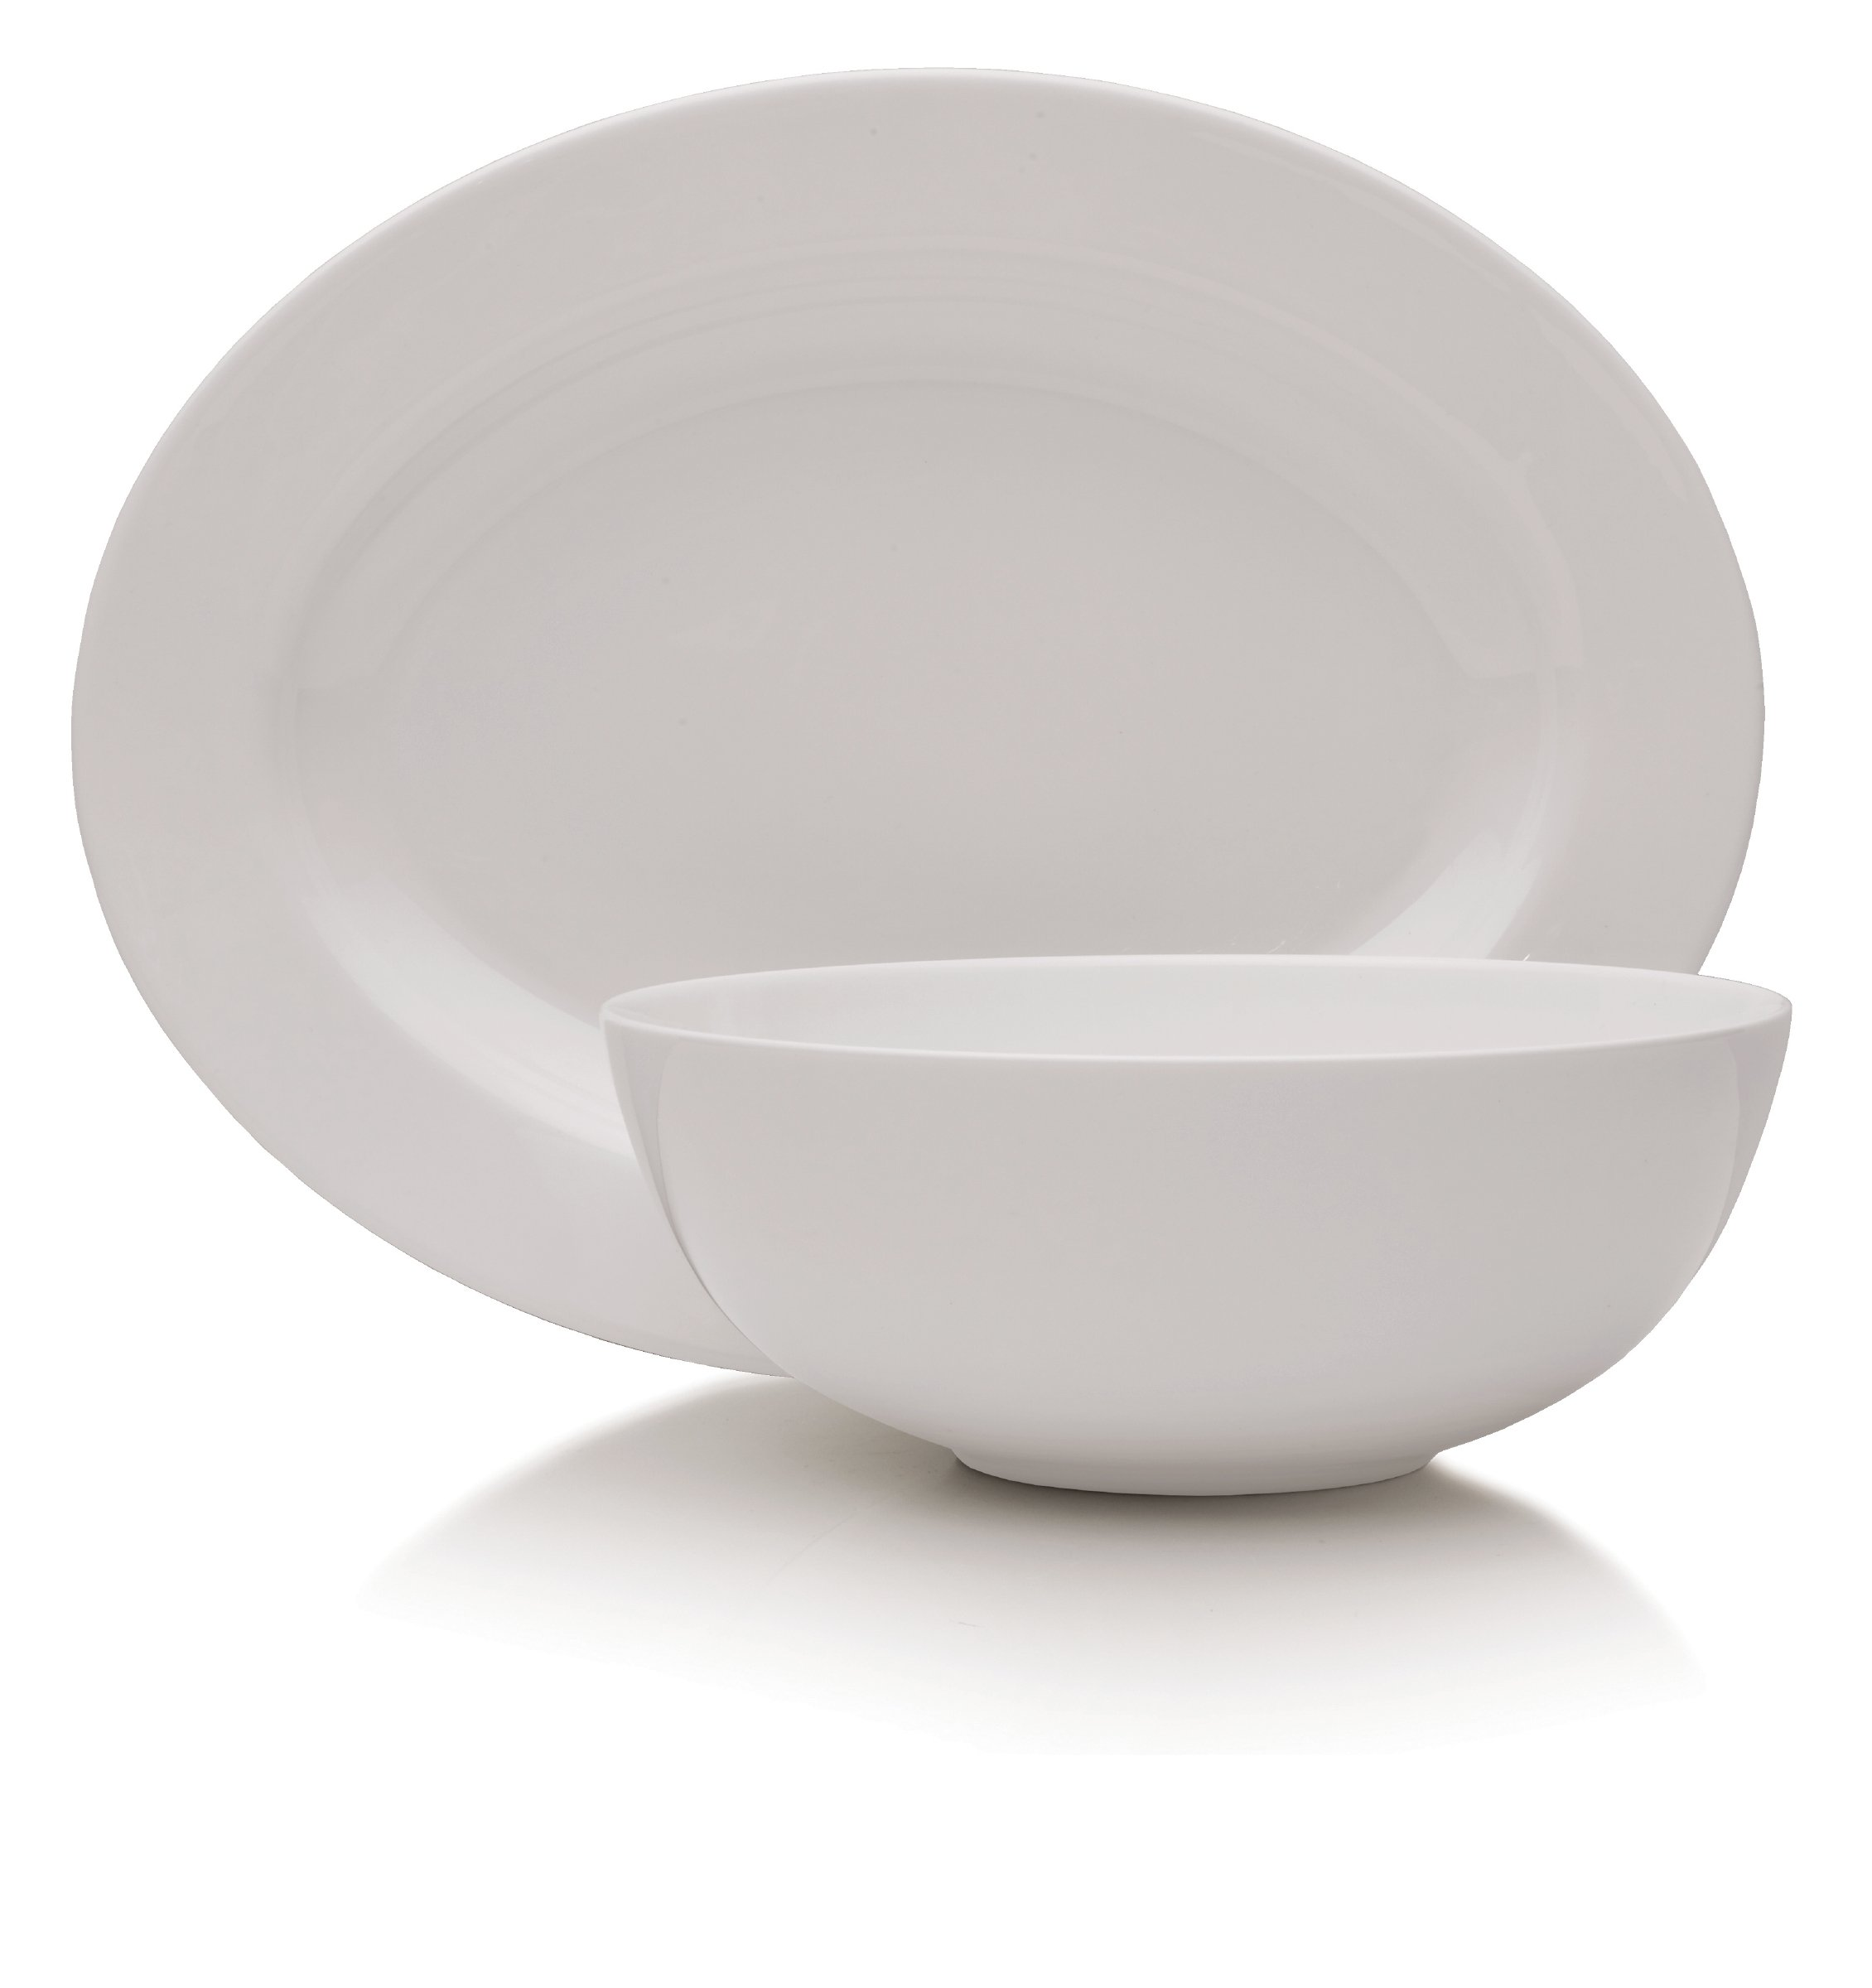 Mikasa Delray 14-Inch Oval Platter and 9-Inch Vegetable Bowl Set